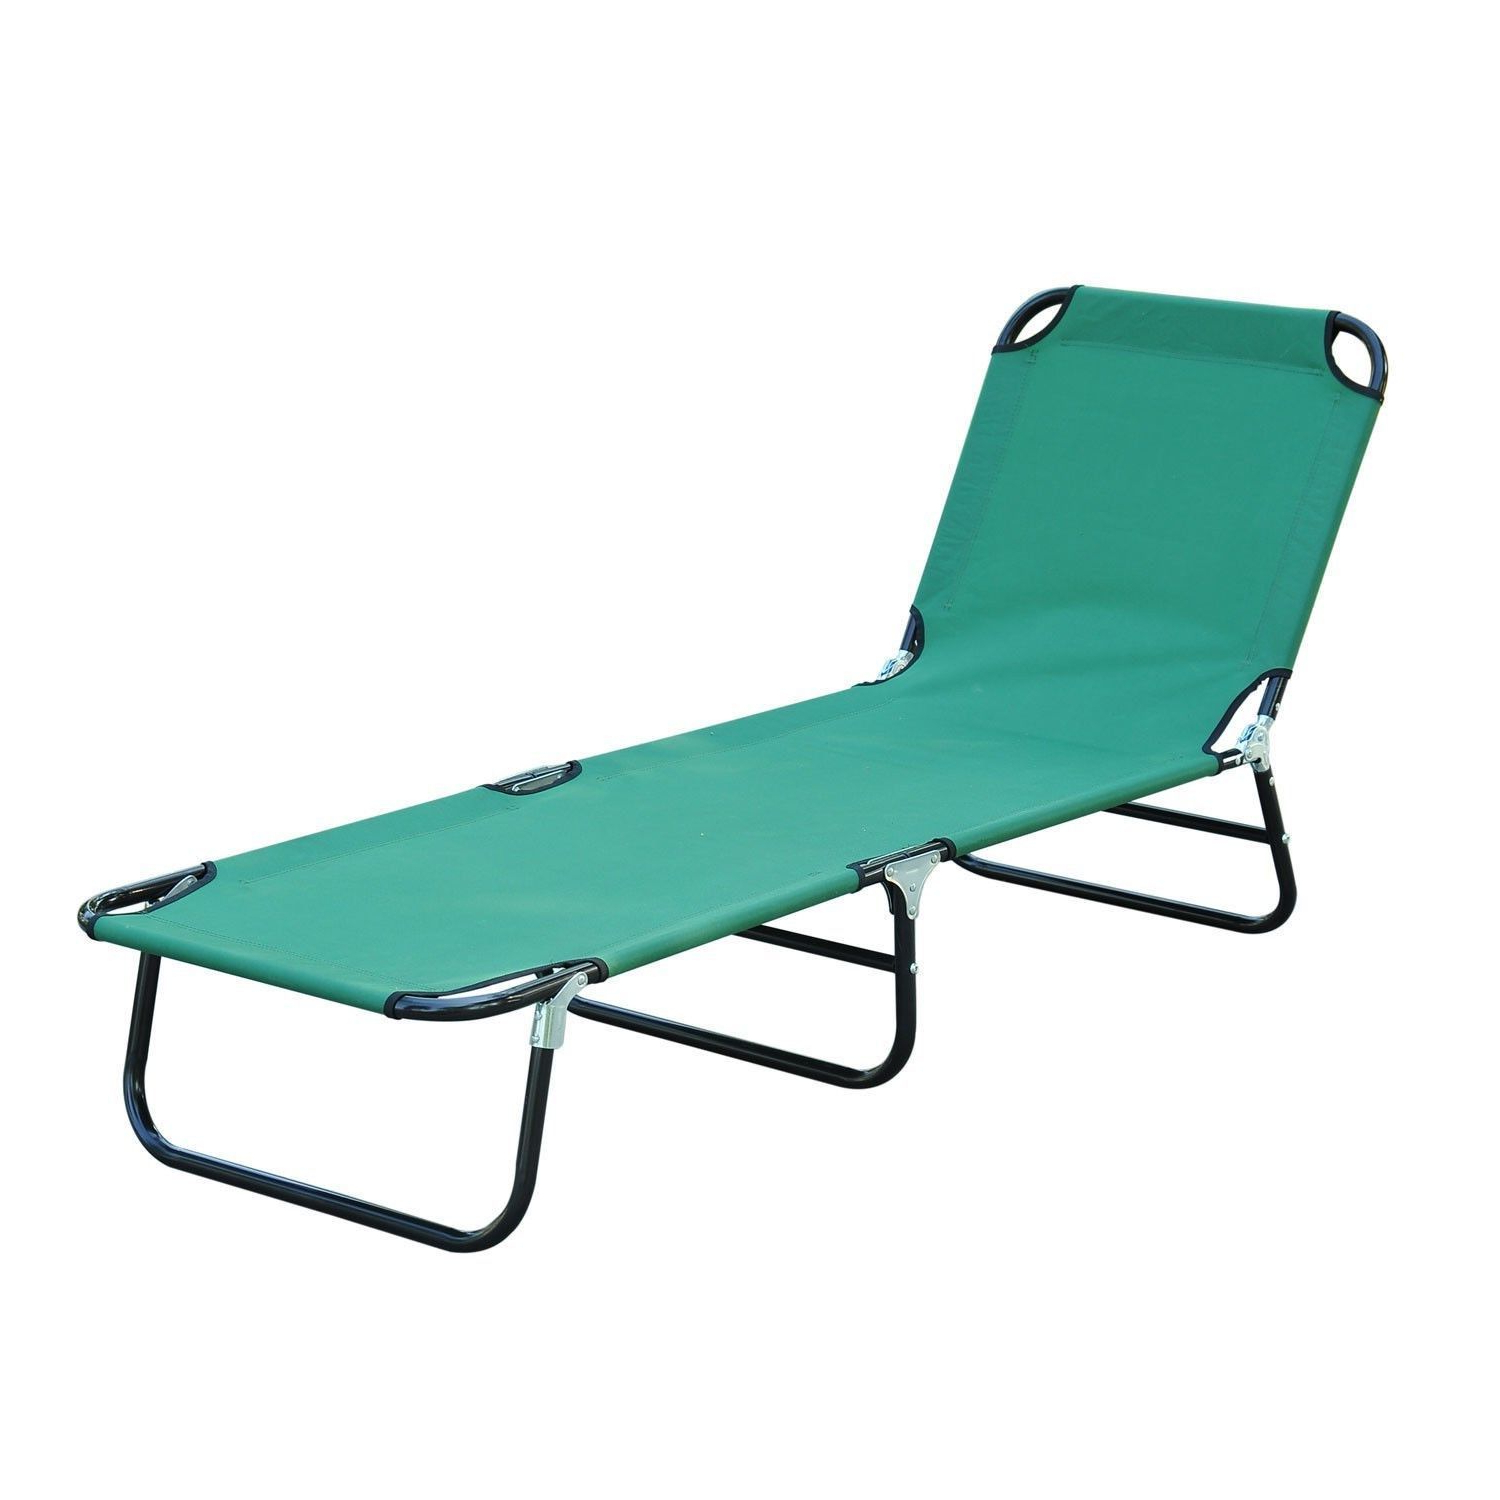 Most Recently Released Patio Foldable Chaise Lounge Chair Outdoor Camping Cot Sun Recliner Beach Pool For Portable Reclining Beach Chaise Lounge Folding Chairs (View 13 of 25)